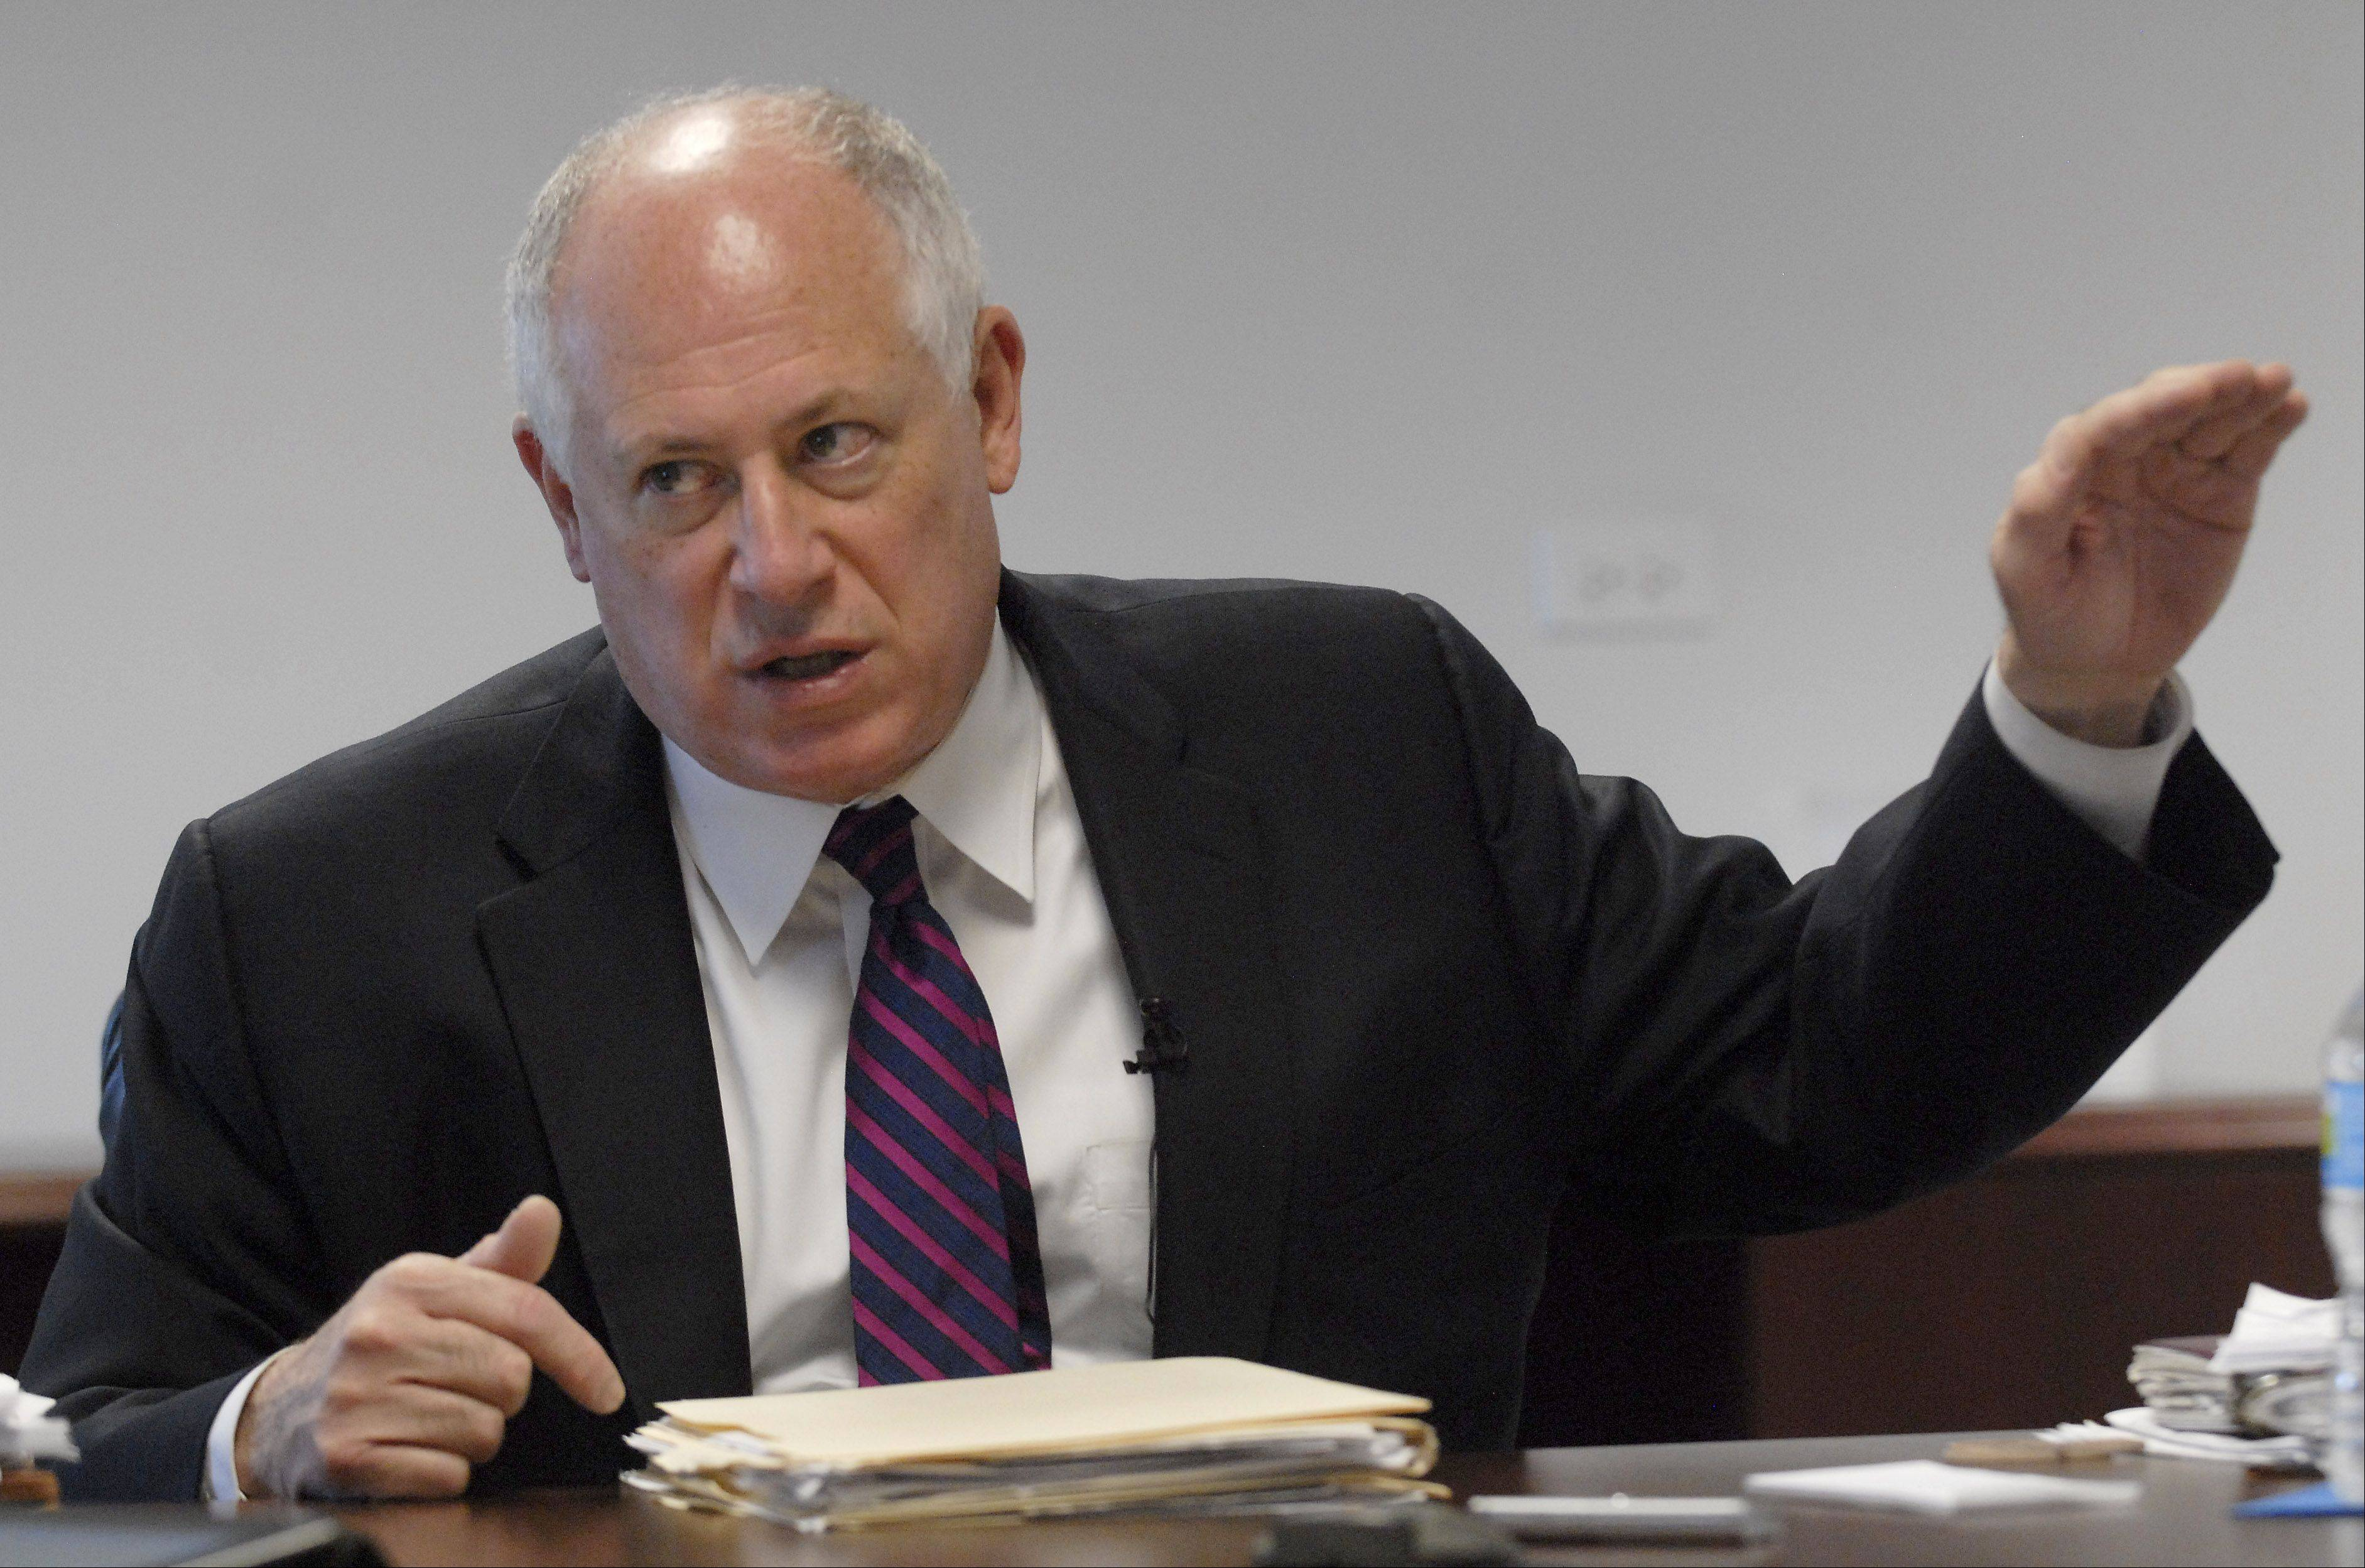 Gov. Pat Quinn called lawmakers back to Springfield this month for a special legislative session on pensions. But both chambers remained divided on how fix the problem.